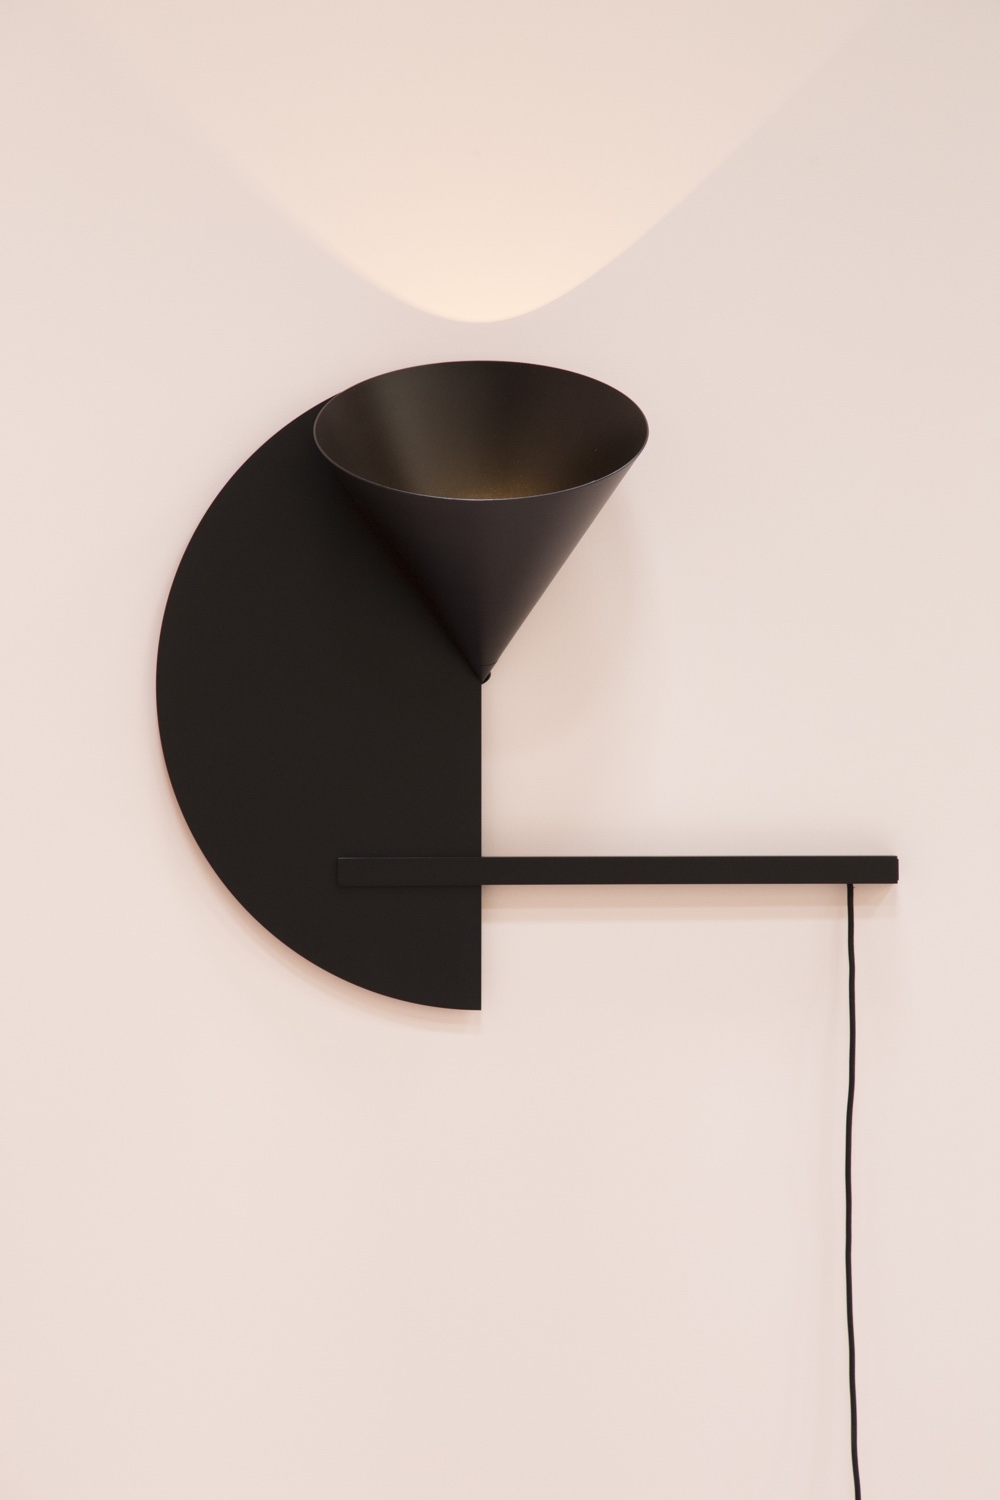 Cirkle wall light by Daphne Laurens.